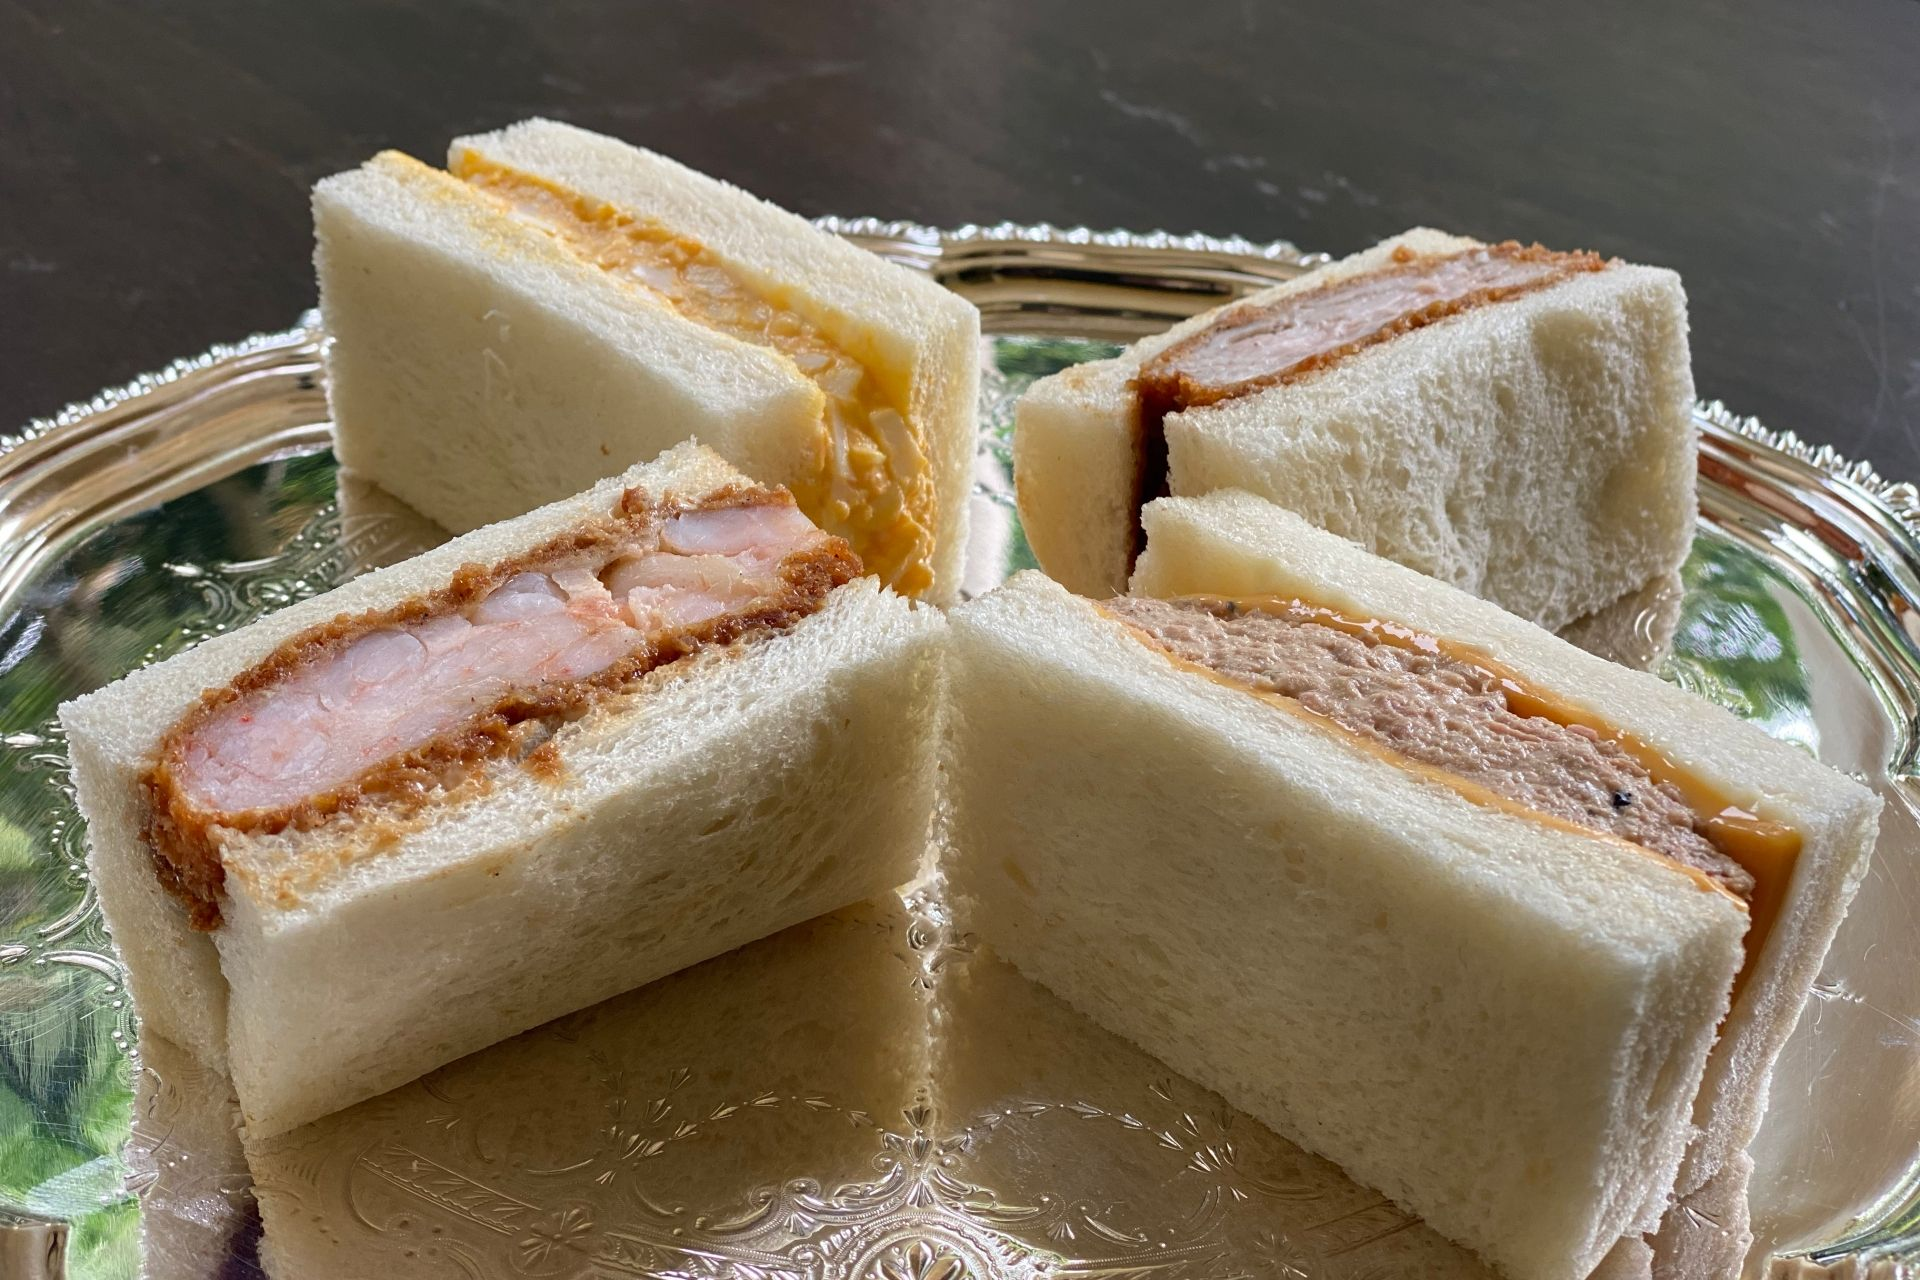 Dining Update: Mister Sando Brings Beloved Japanese Convenience Store Sandwiches To The Metro